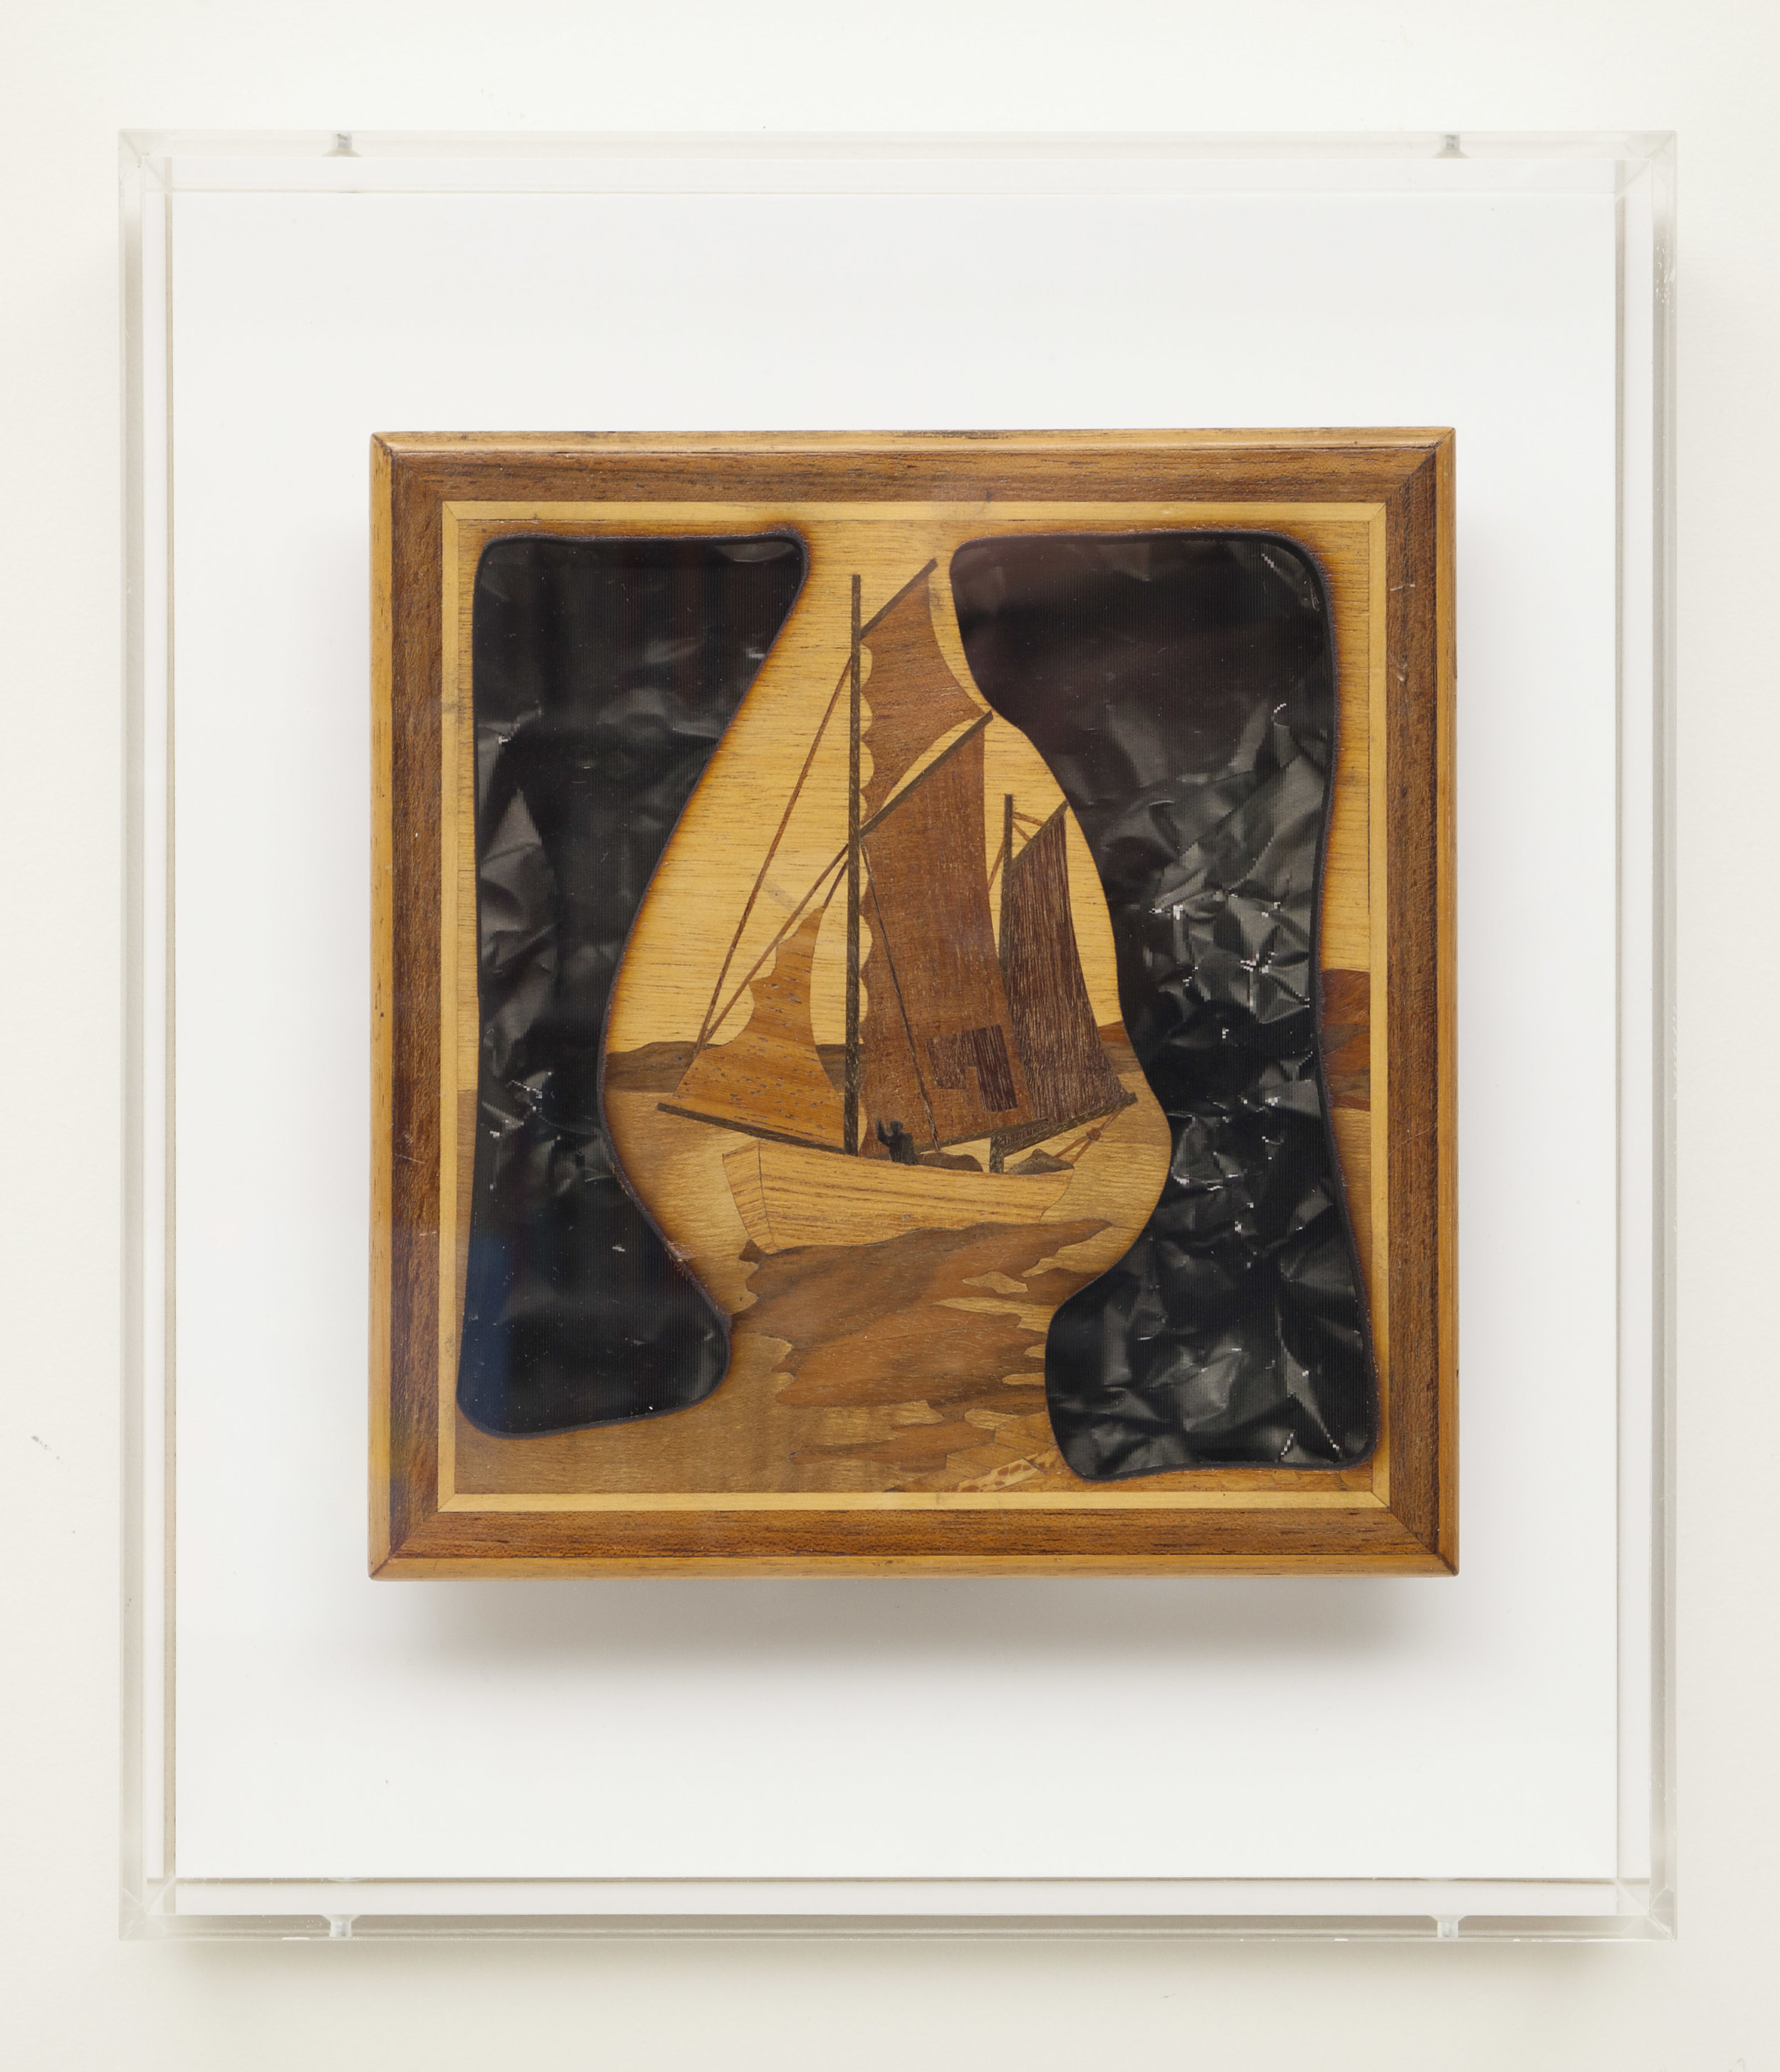 """Somewhere of the coast (Bas Jan Ader)  Laser-cut marquetry over 3D lenticulars in custom acrylic box. 12x14"""""""